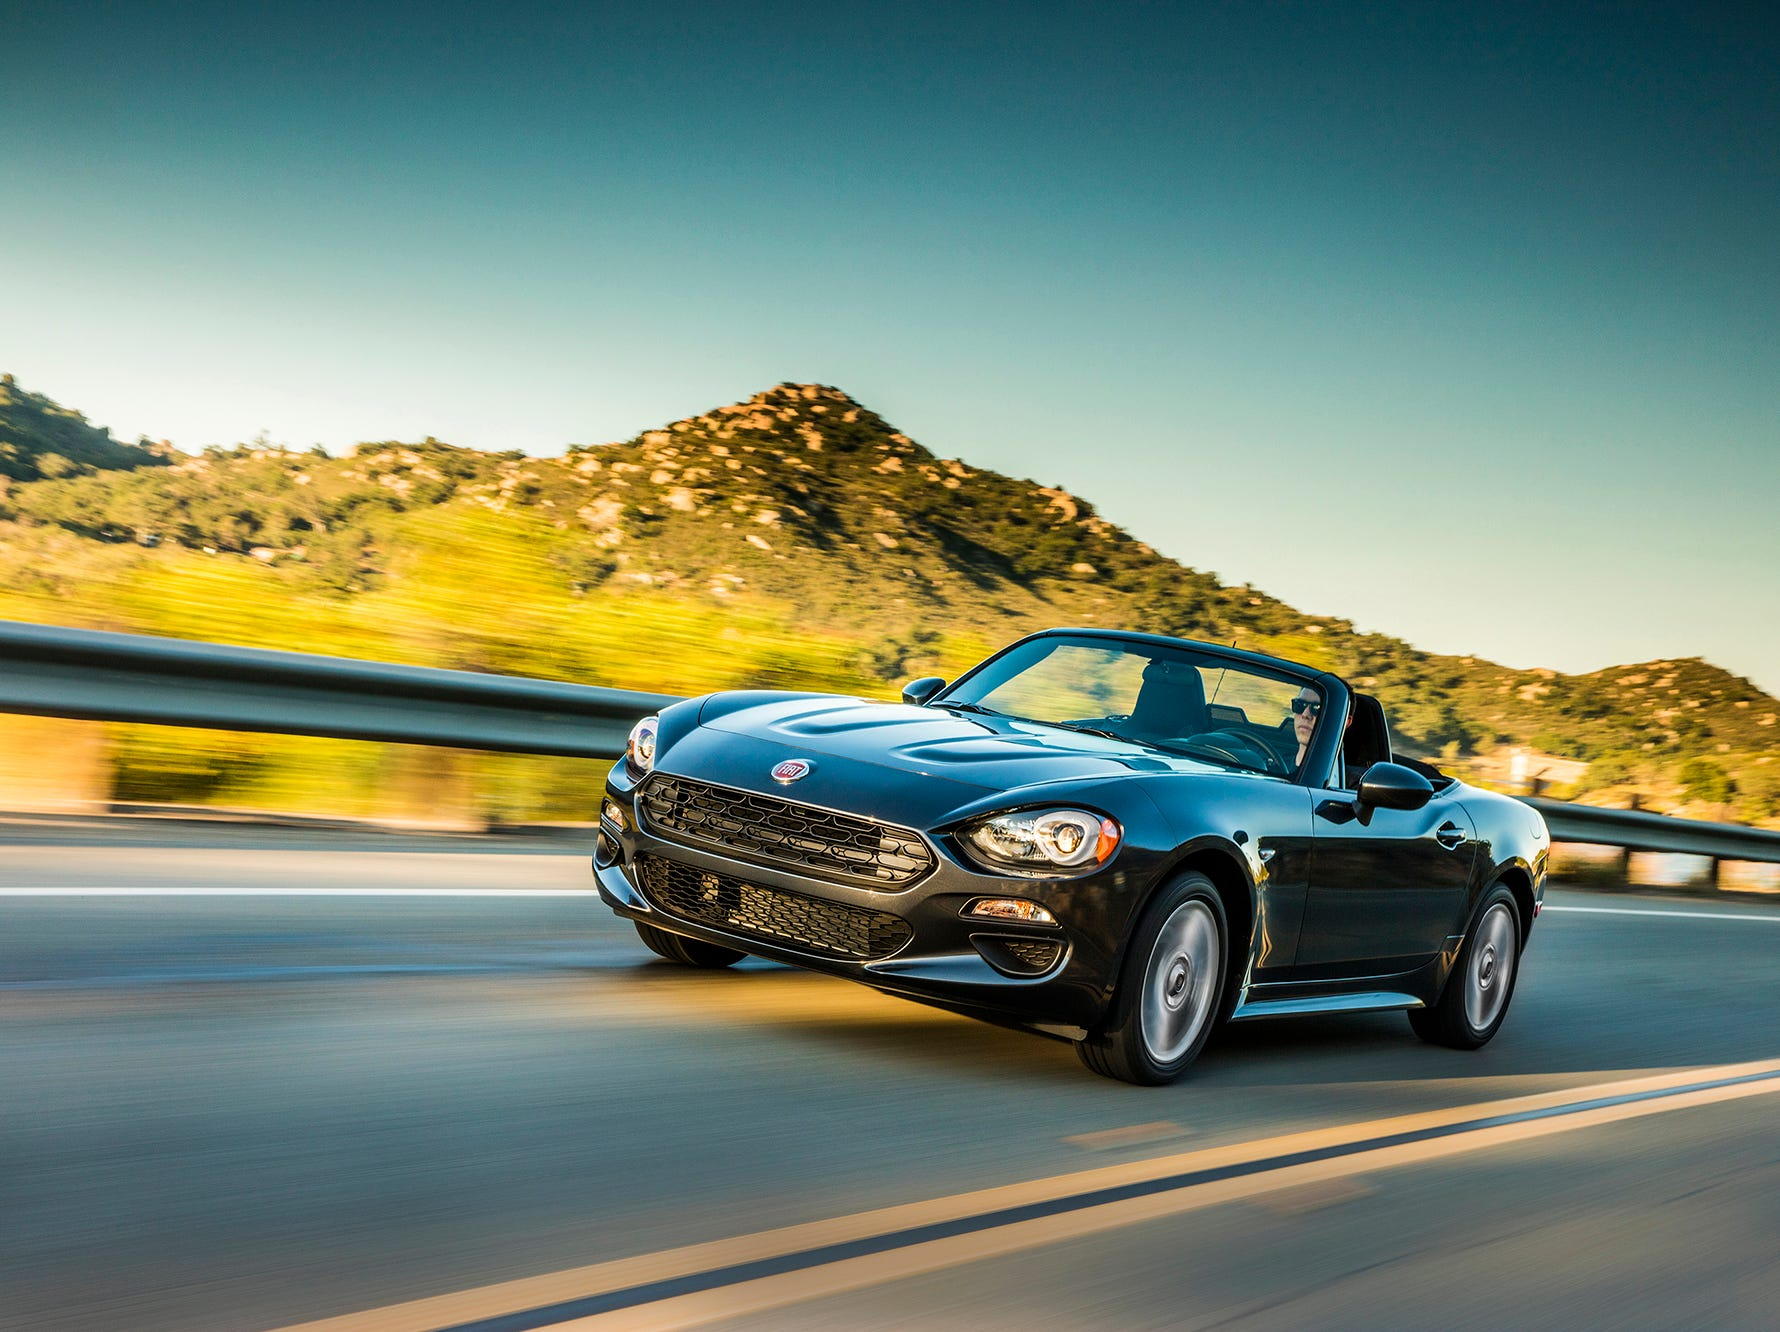 The 2019 Fiat 124 Spider Classica.